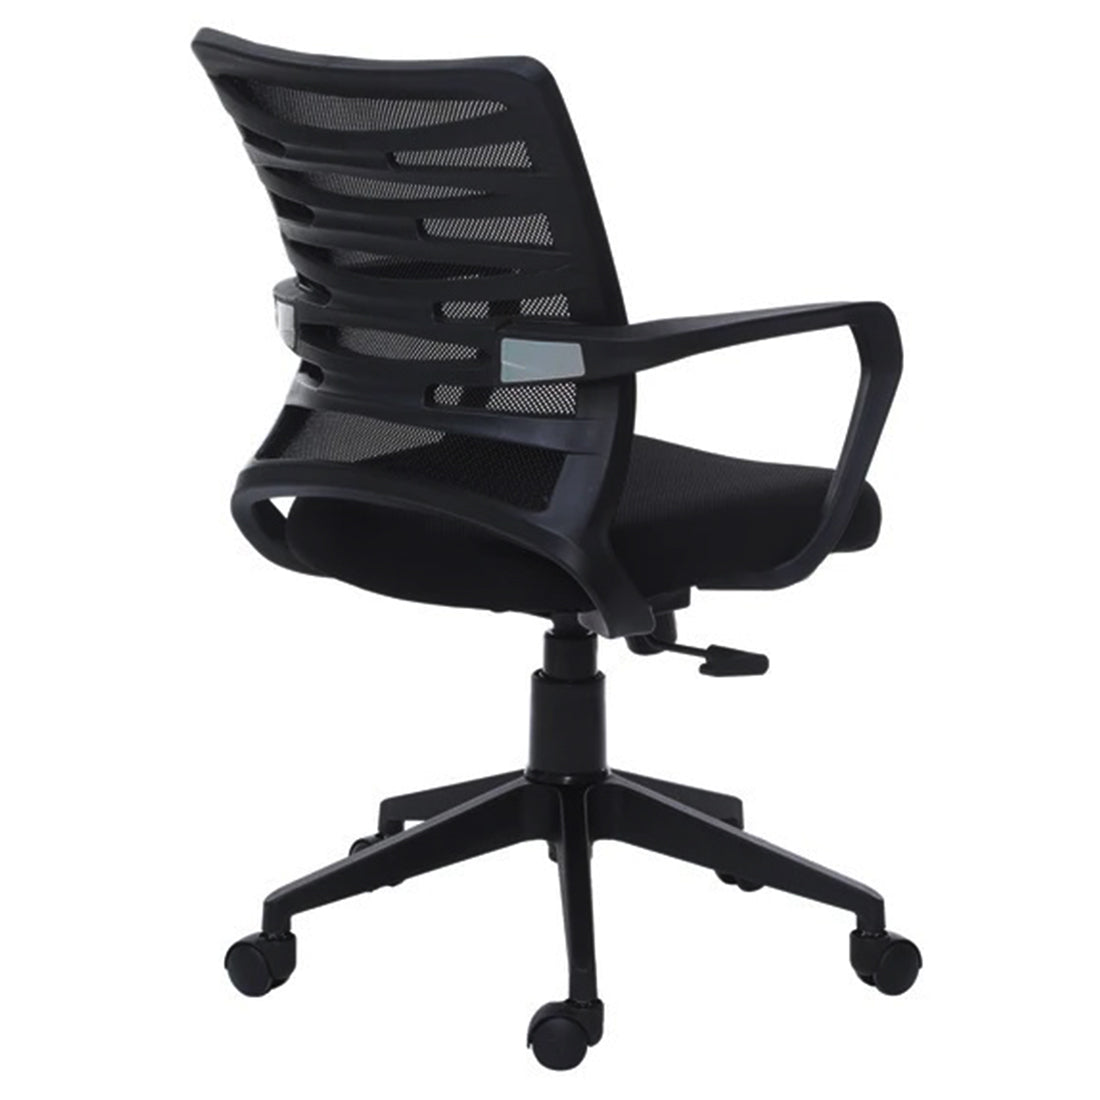 Detec™ Ergonomic Revolving Chair High Spine Back Support - Black